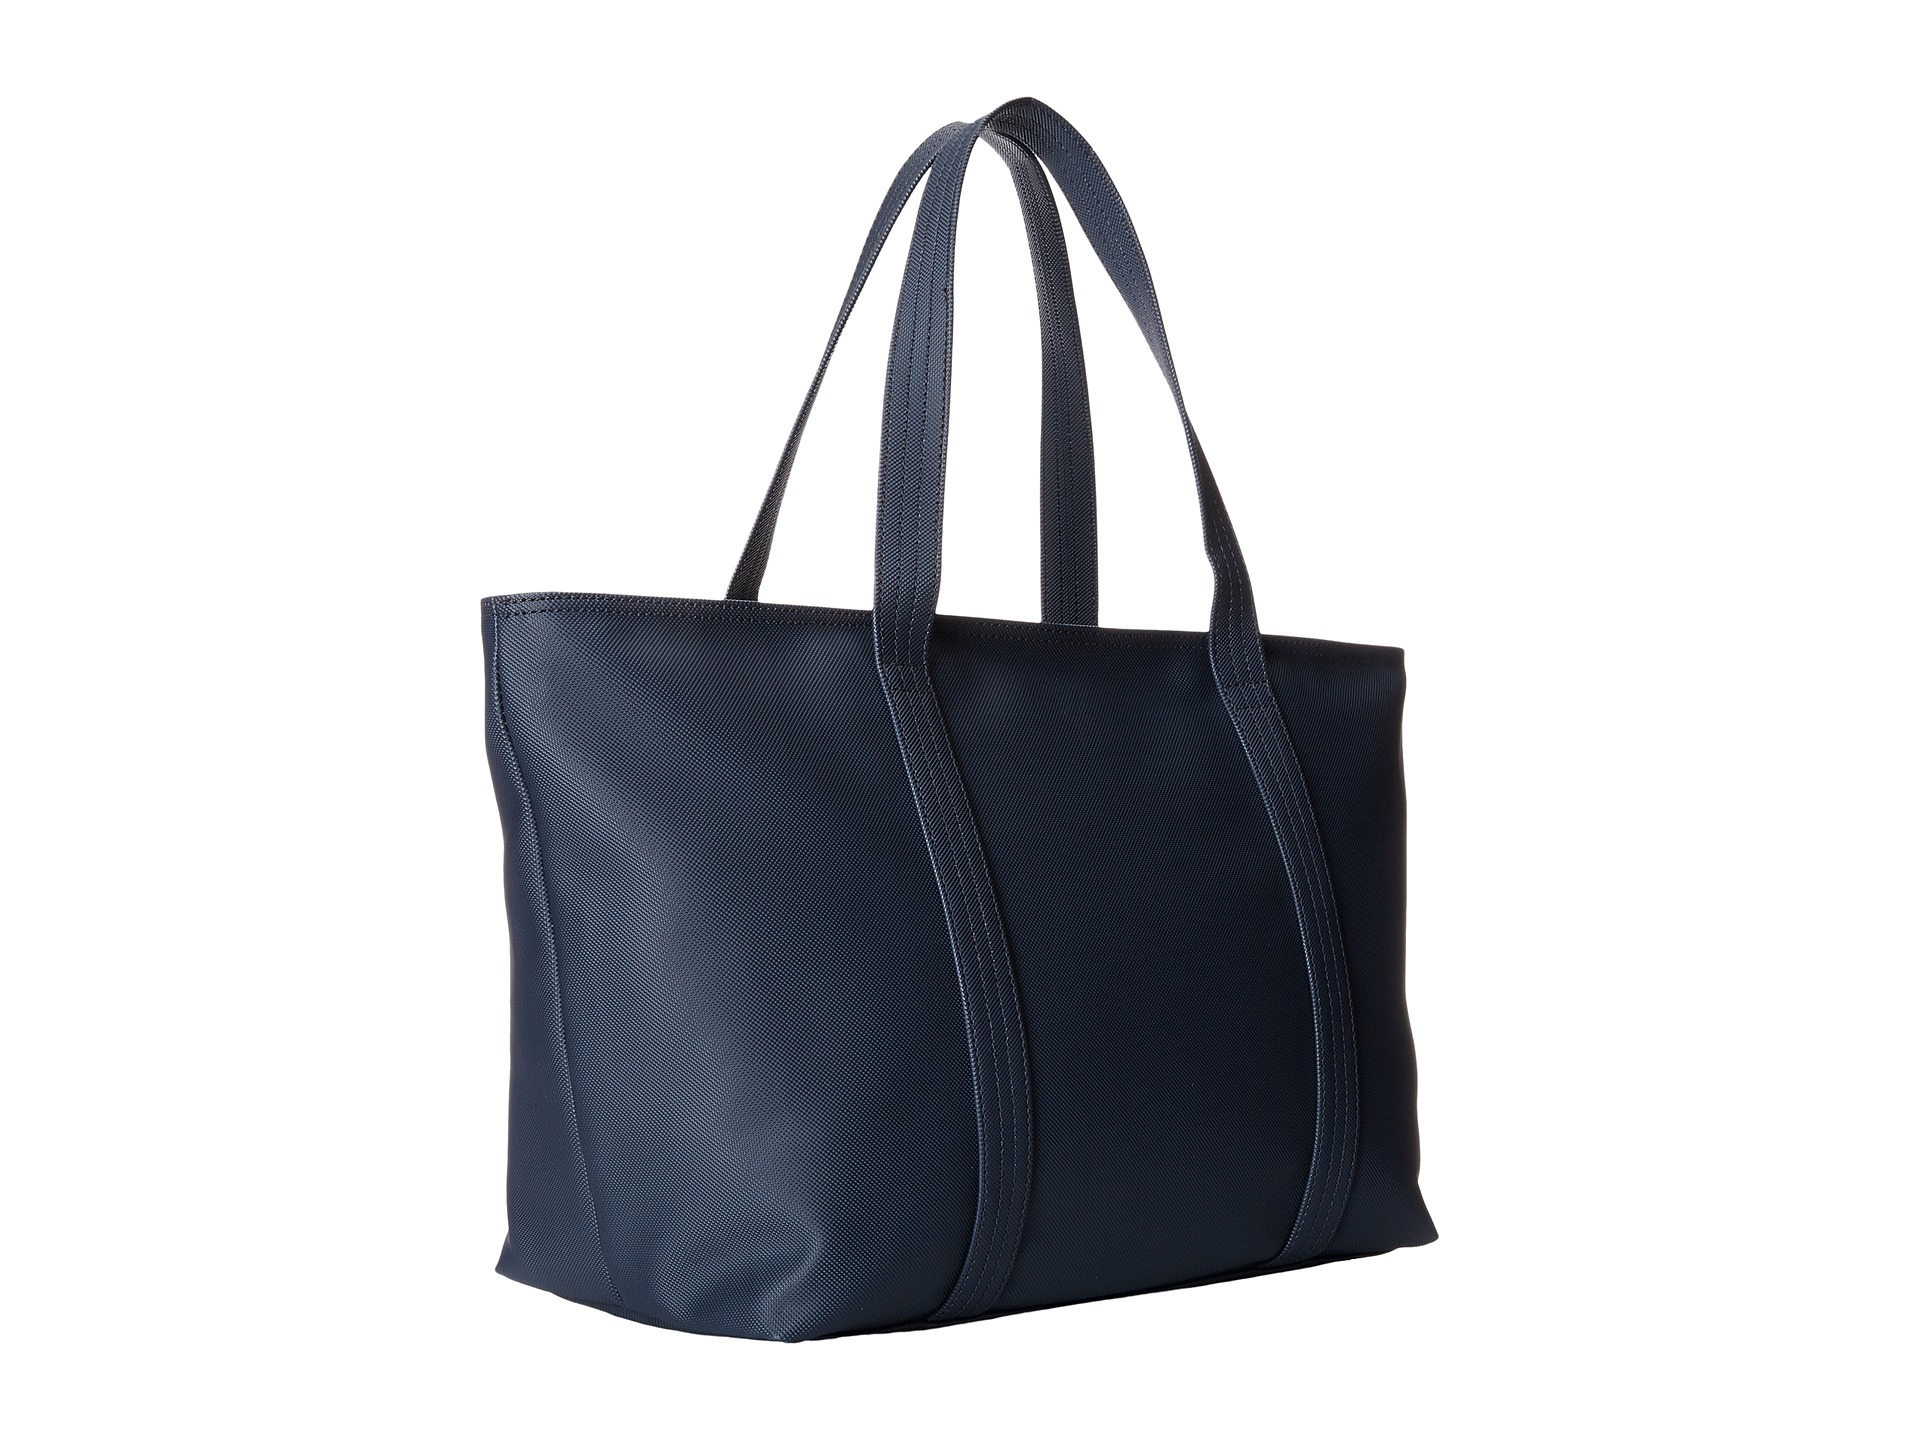 Lyst - Lacoste Classic Large Shopping Bag in Black